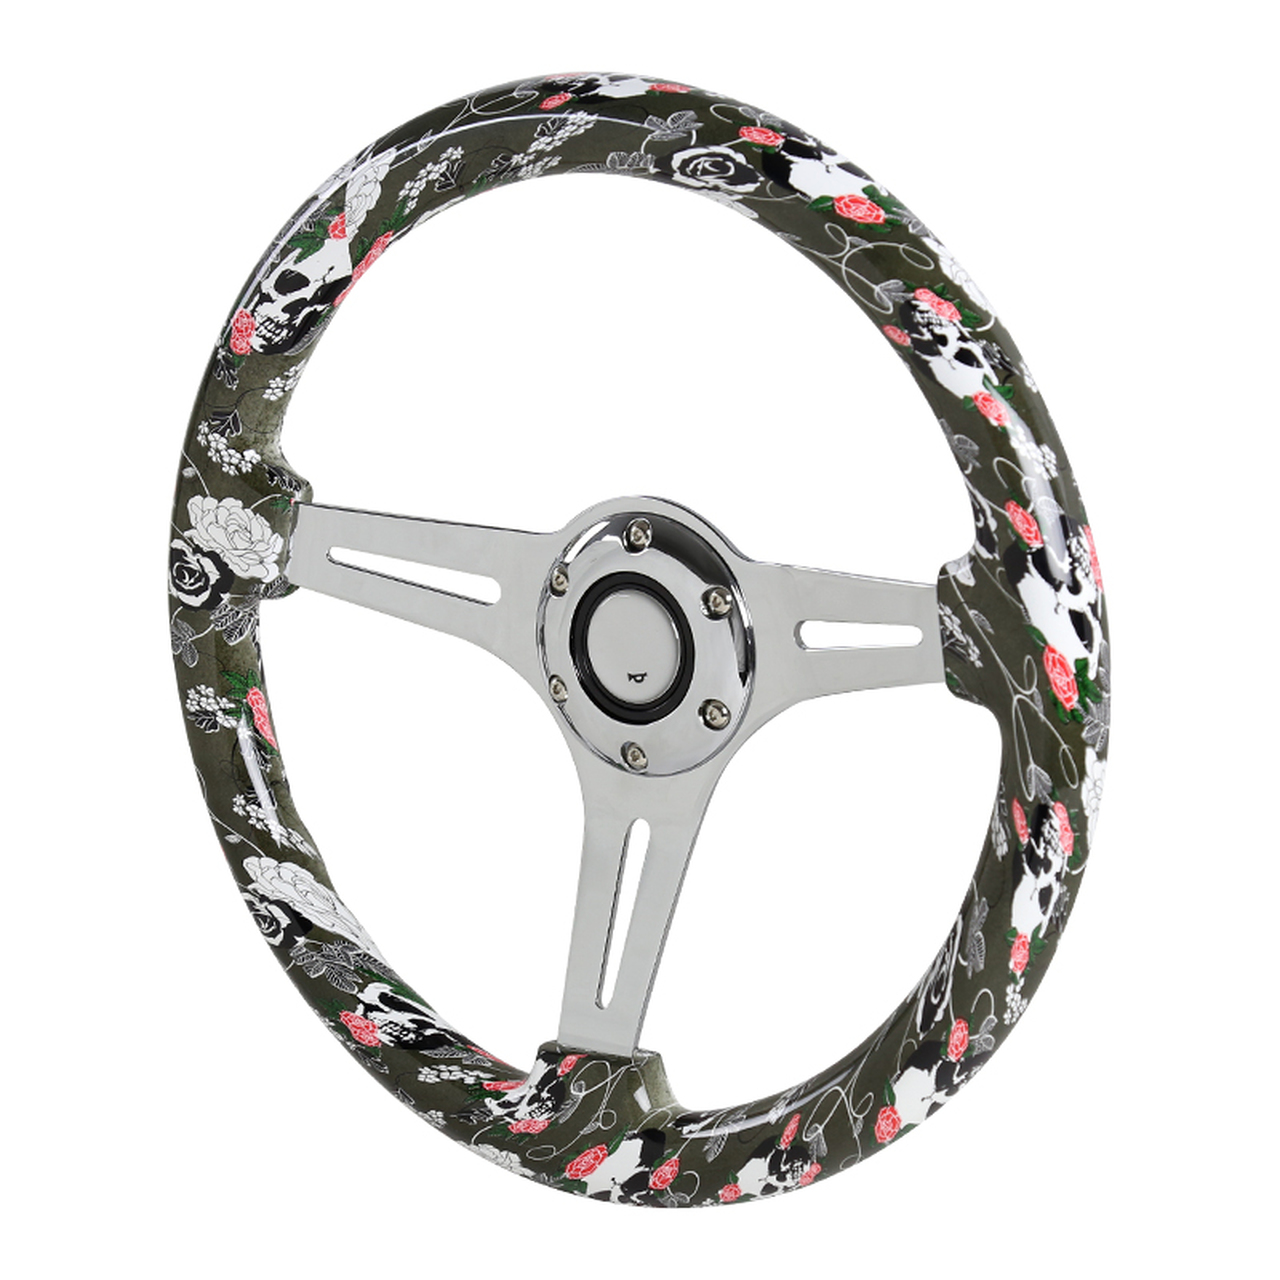 Spec-D Tuning 350mm 3-Spoke Wooden Deep Dish Steering Wheel - Spec-D Tuning SW-587-MGKL